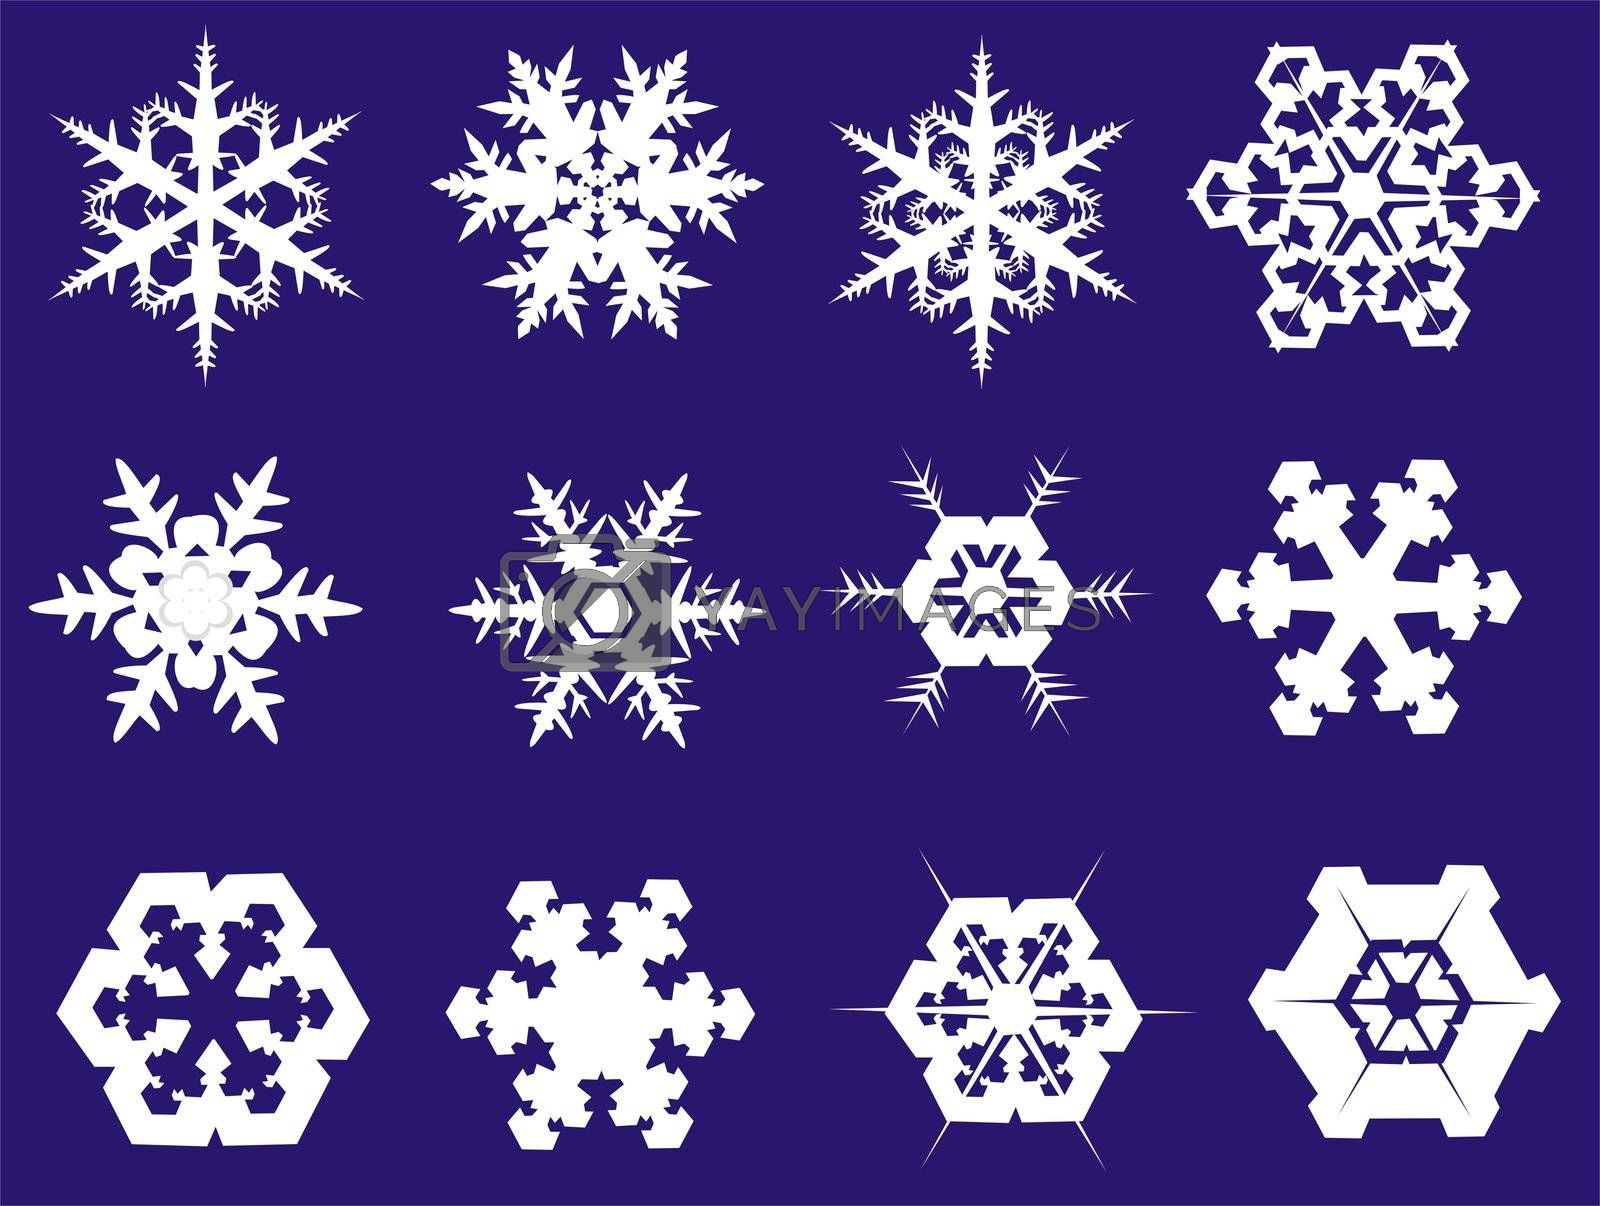 Snowflakes in twelve different shapes, illustration